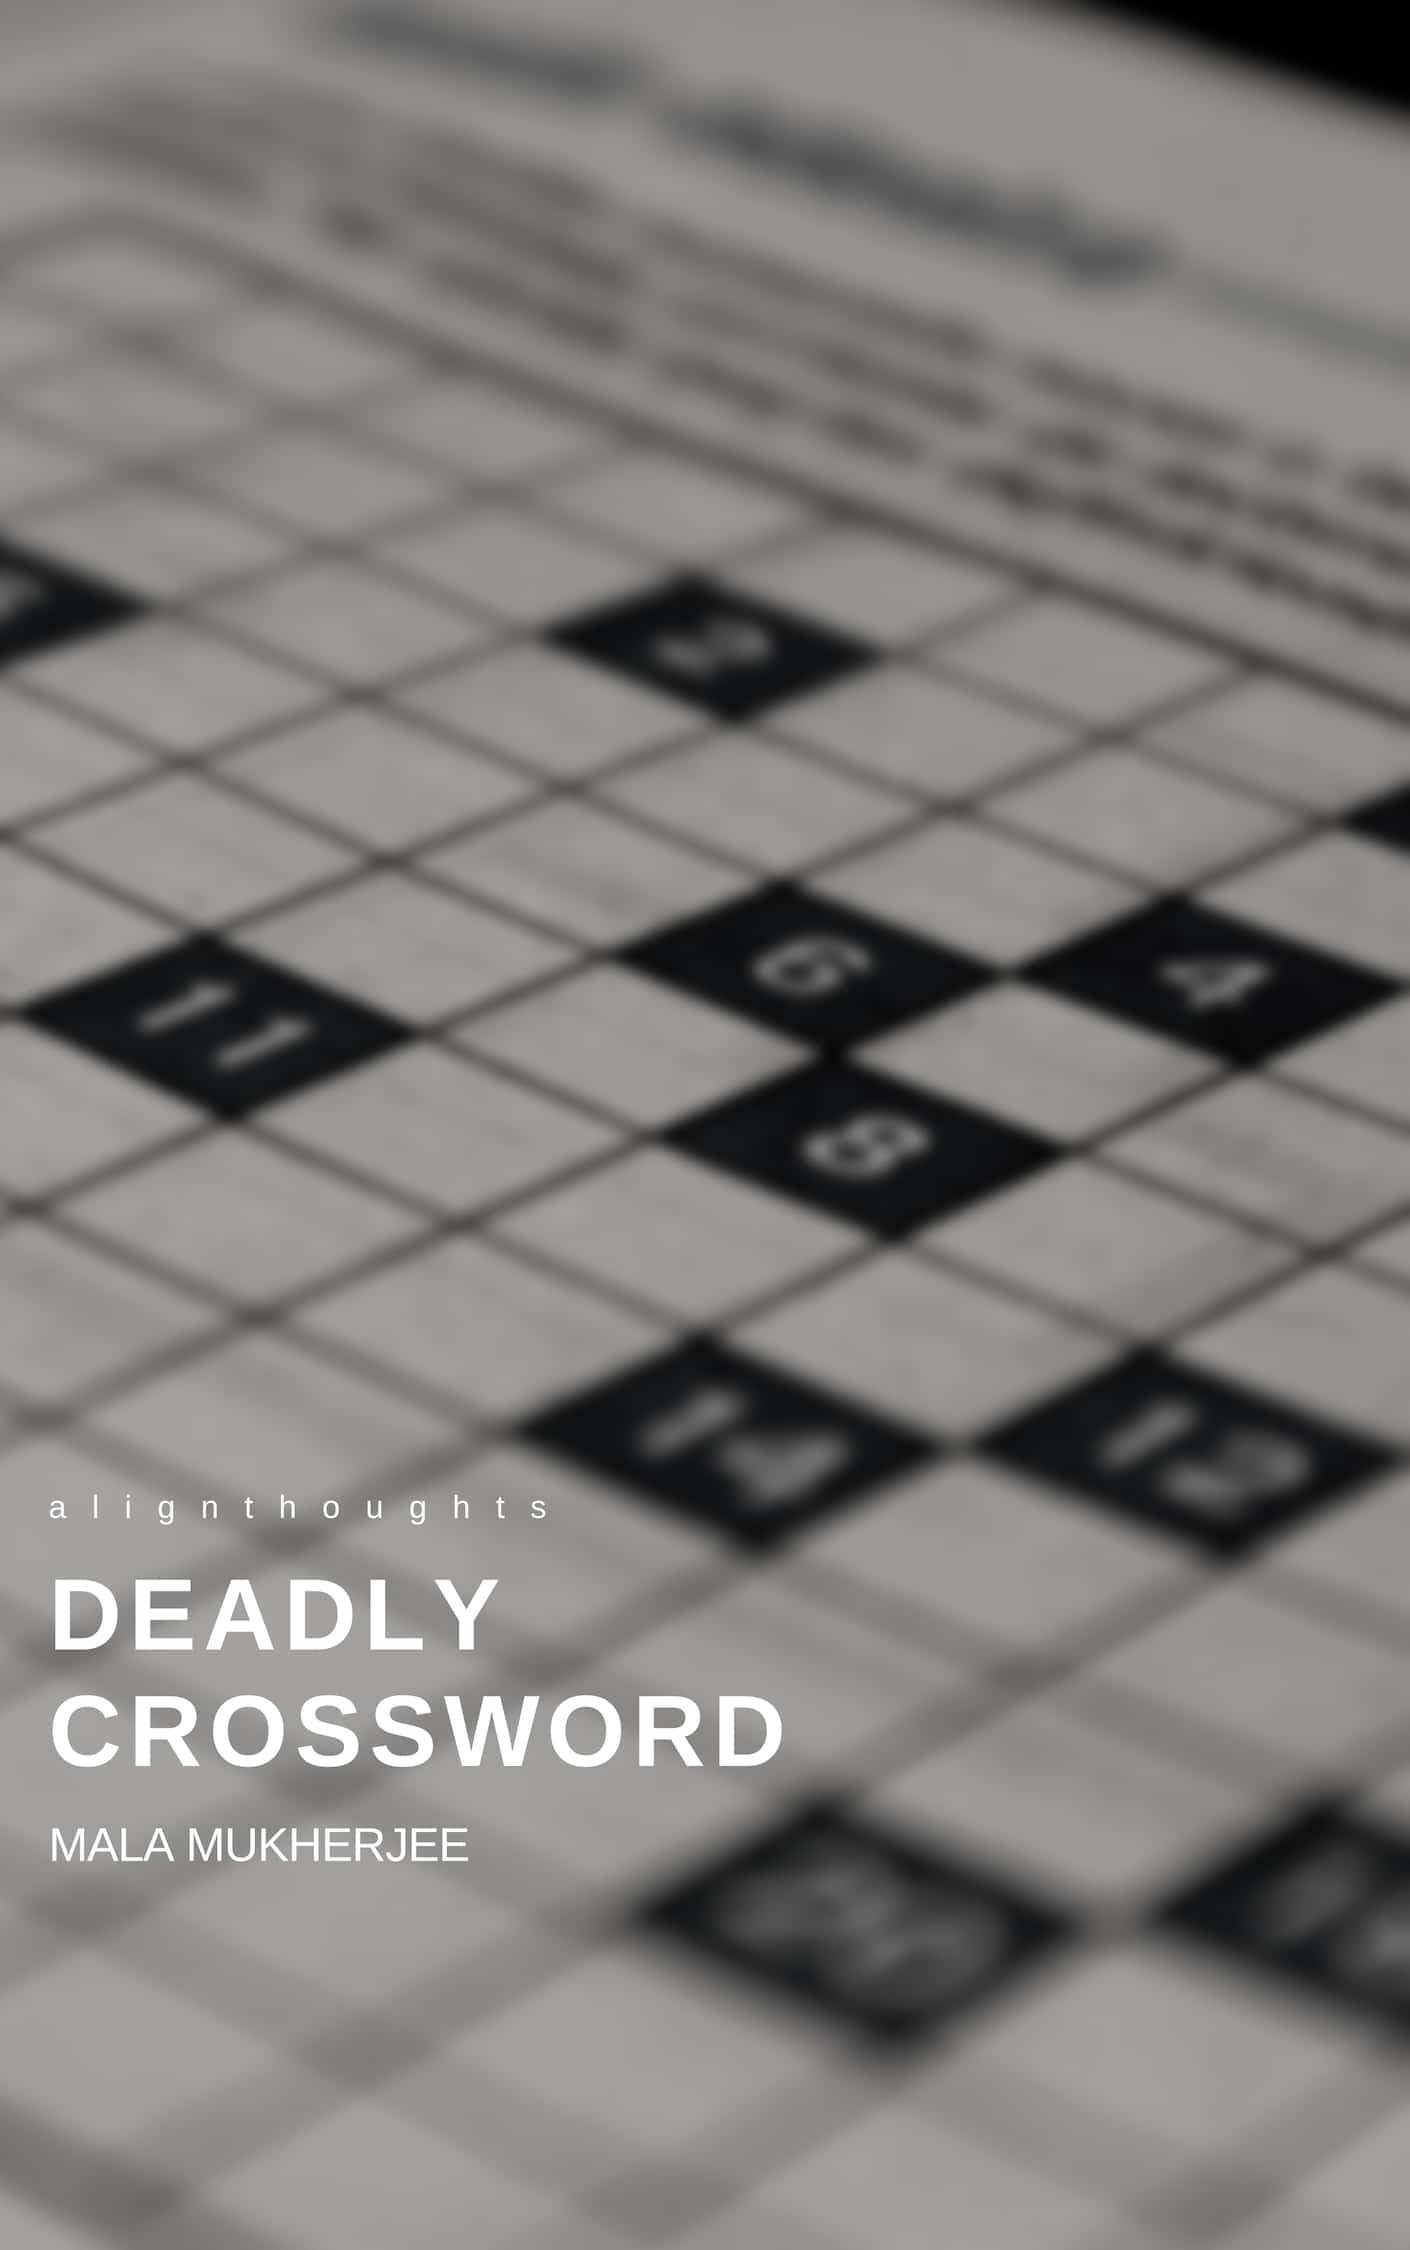 deadly crossword alignthoughts